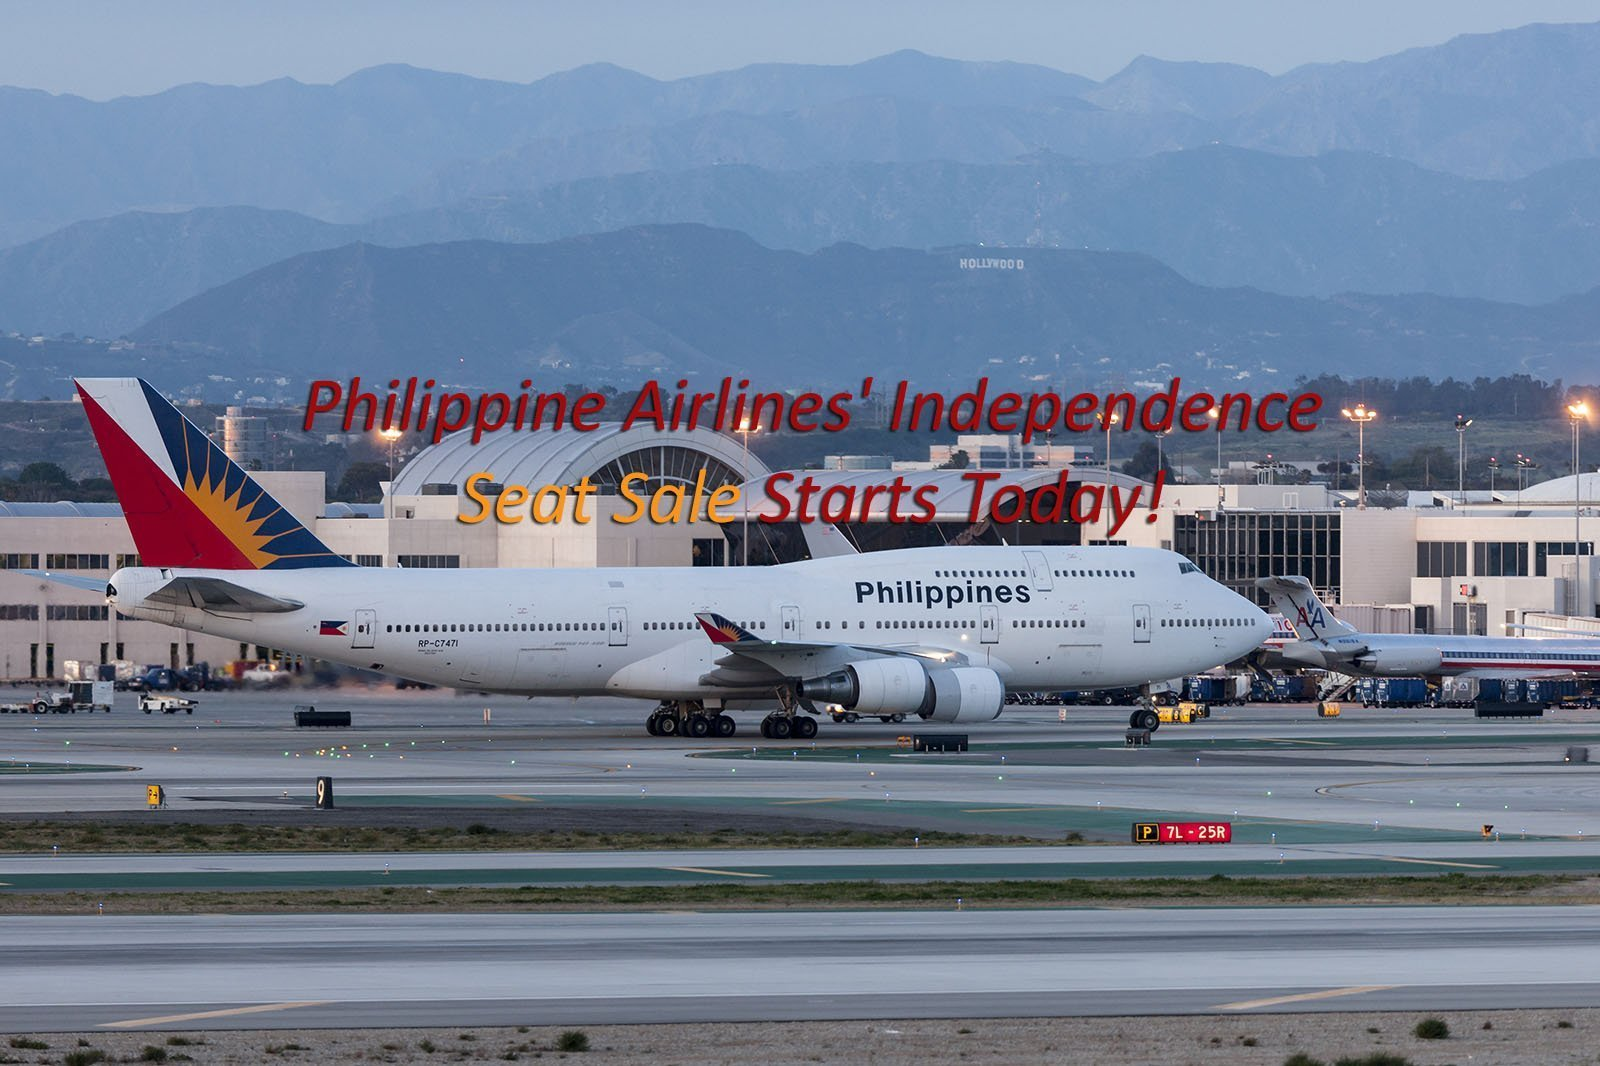 Philippine Airlines' Independence Day Seat Sale Starts Today!